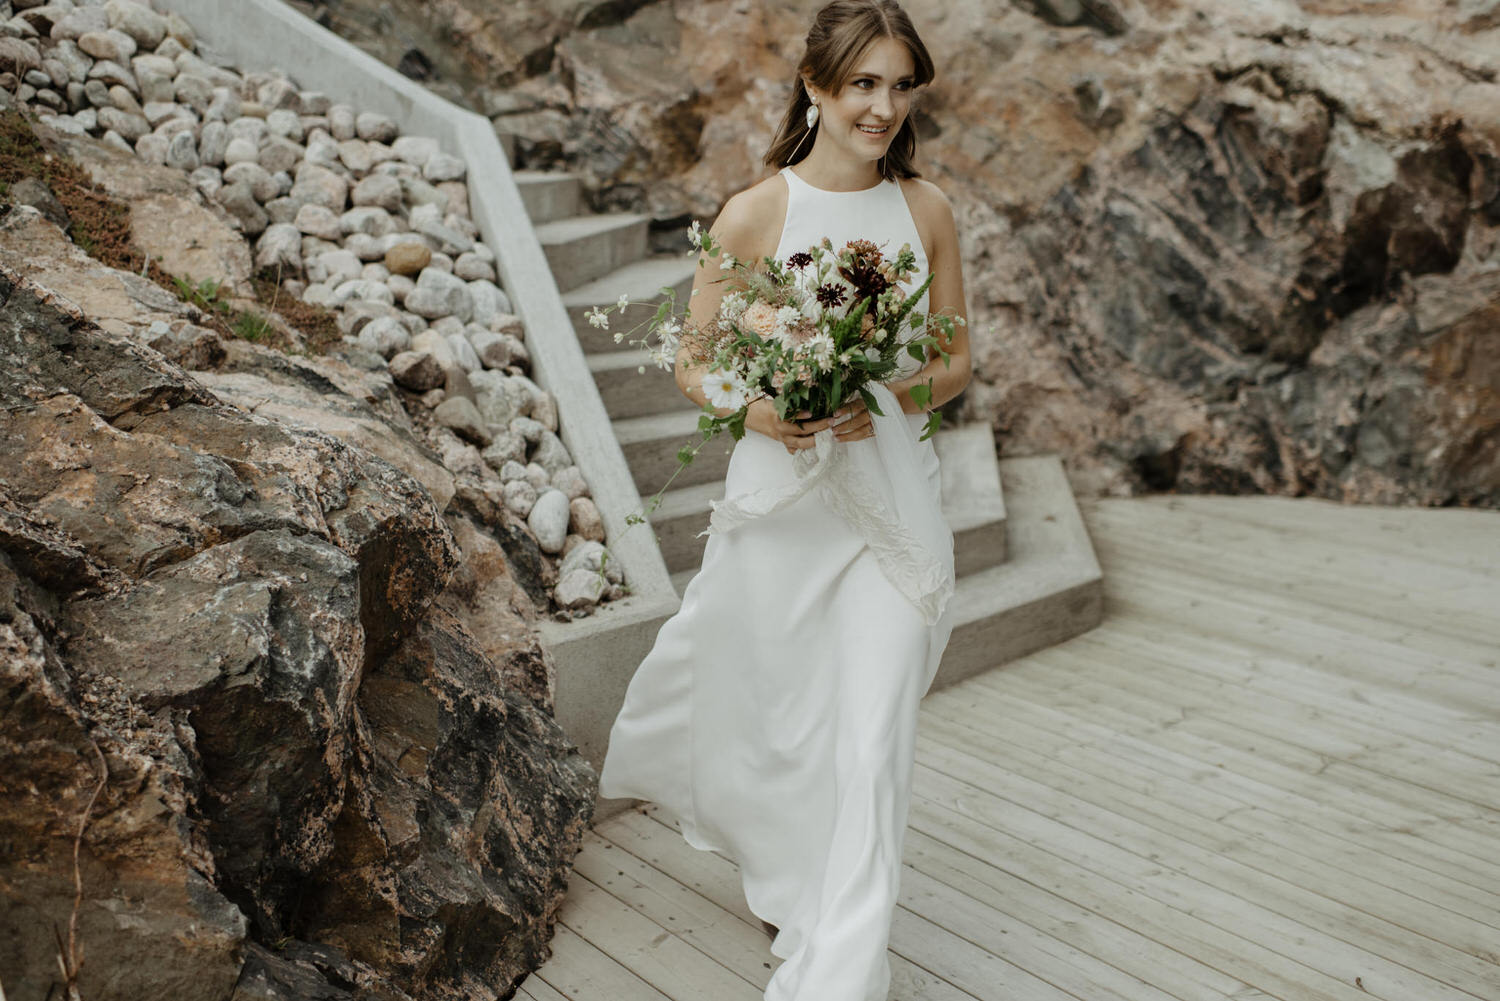 Clara in her chic BHLDN wedding dress